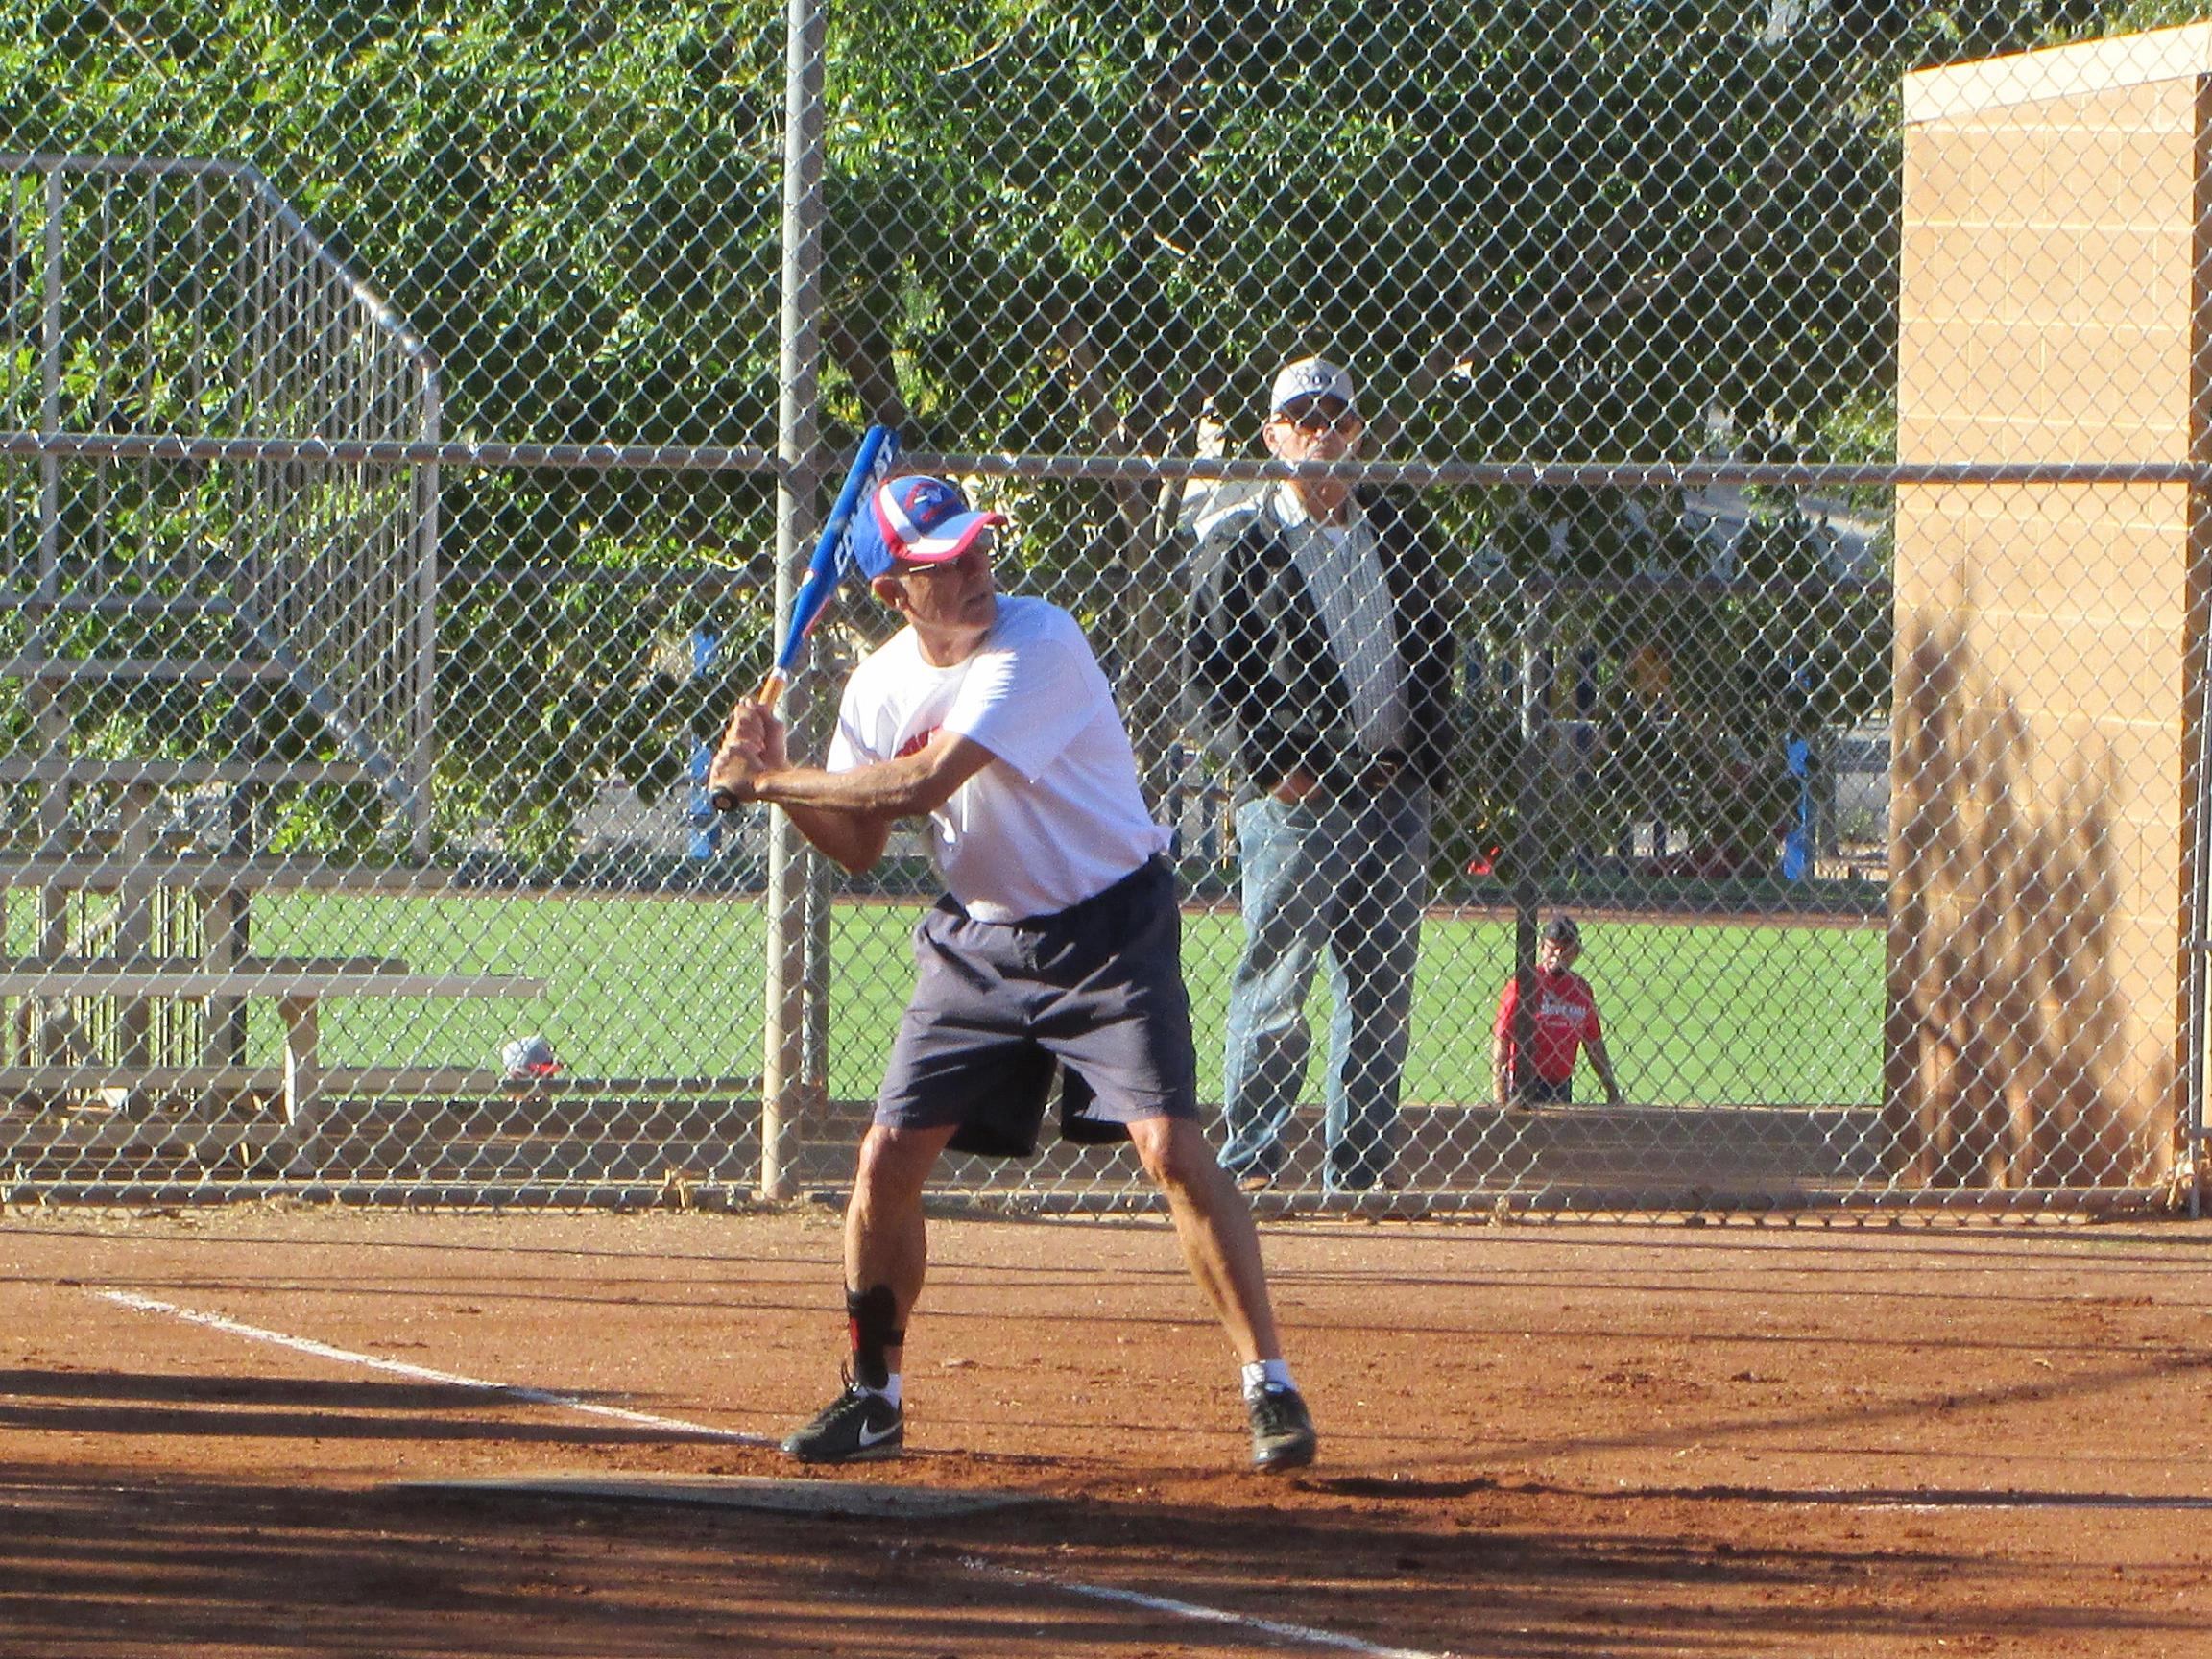 Geezers begin Fall Season with games on Wednesday